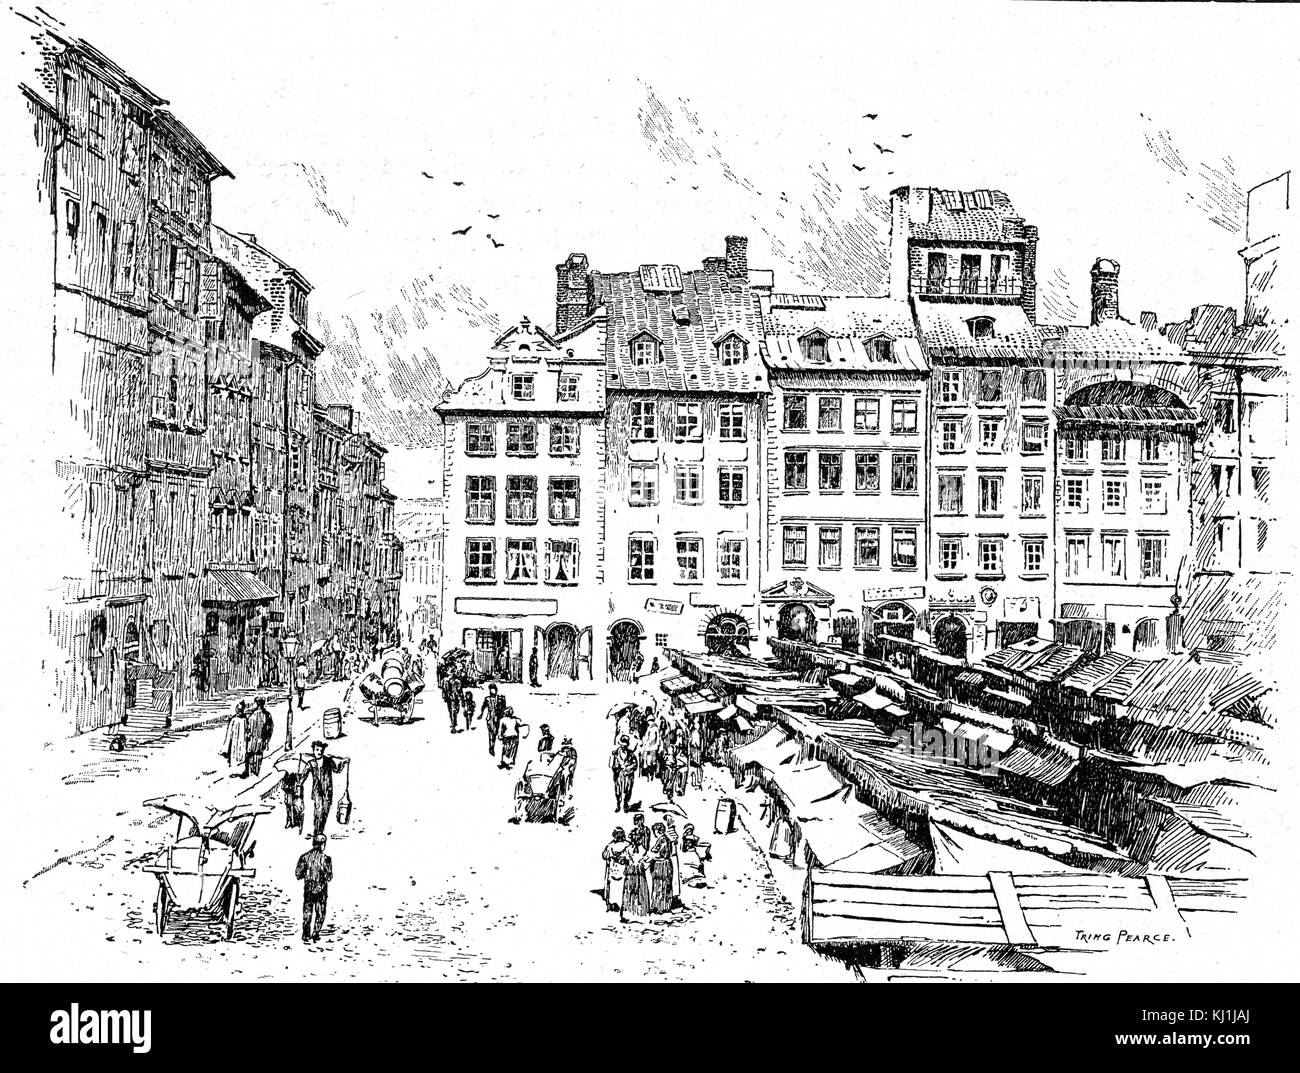 Engraving depicting the old town in Warsaw, Poland. Dated 19th Century - Stock Image